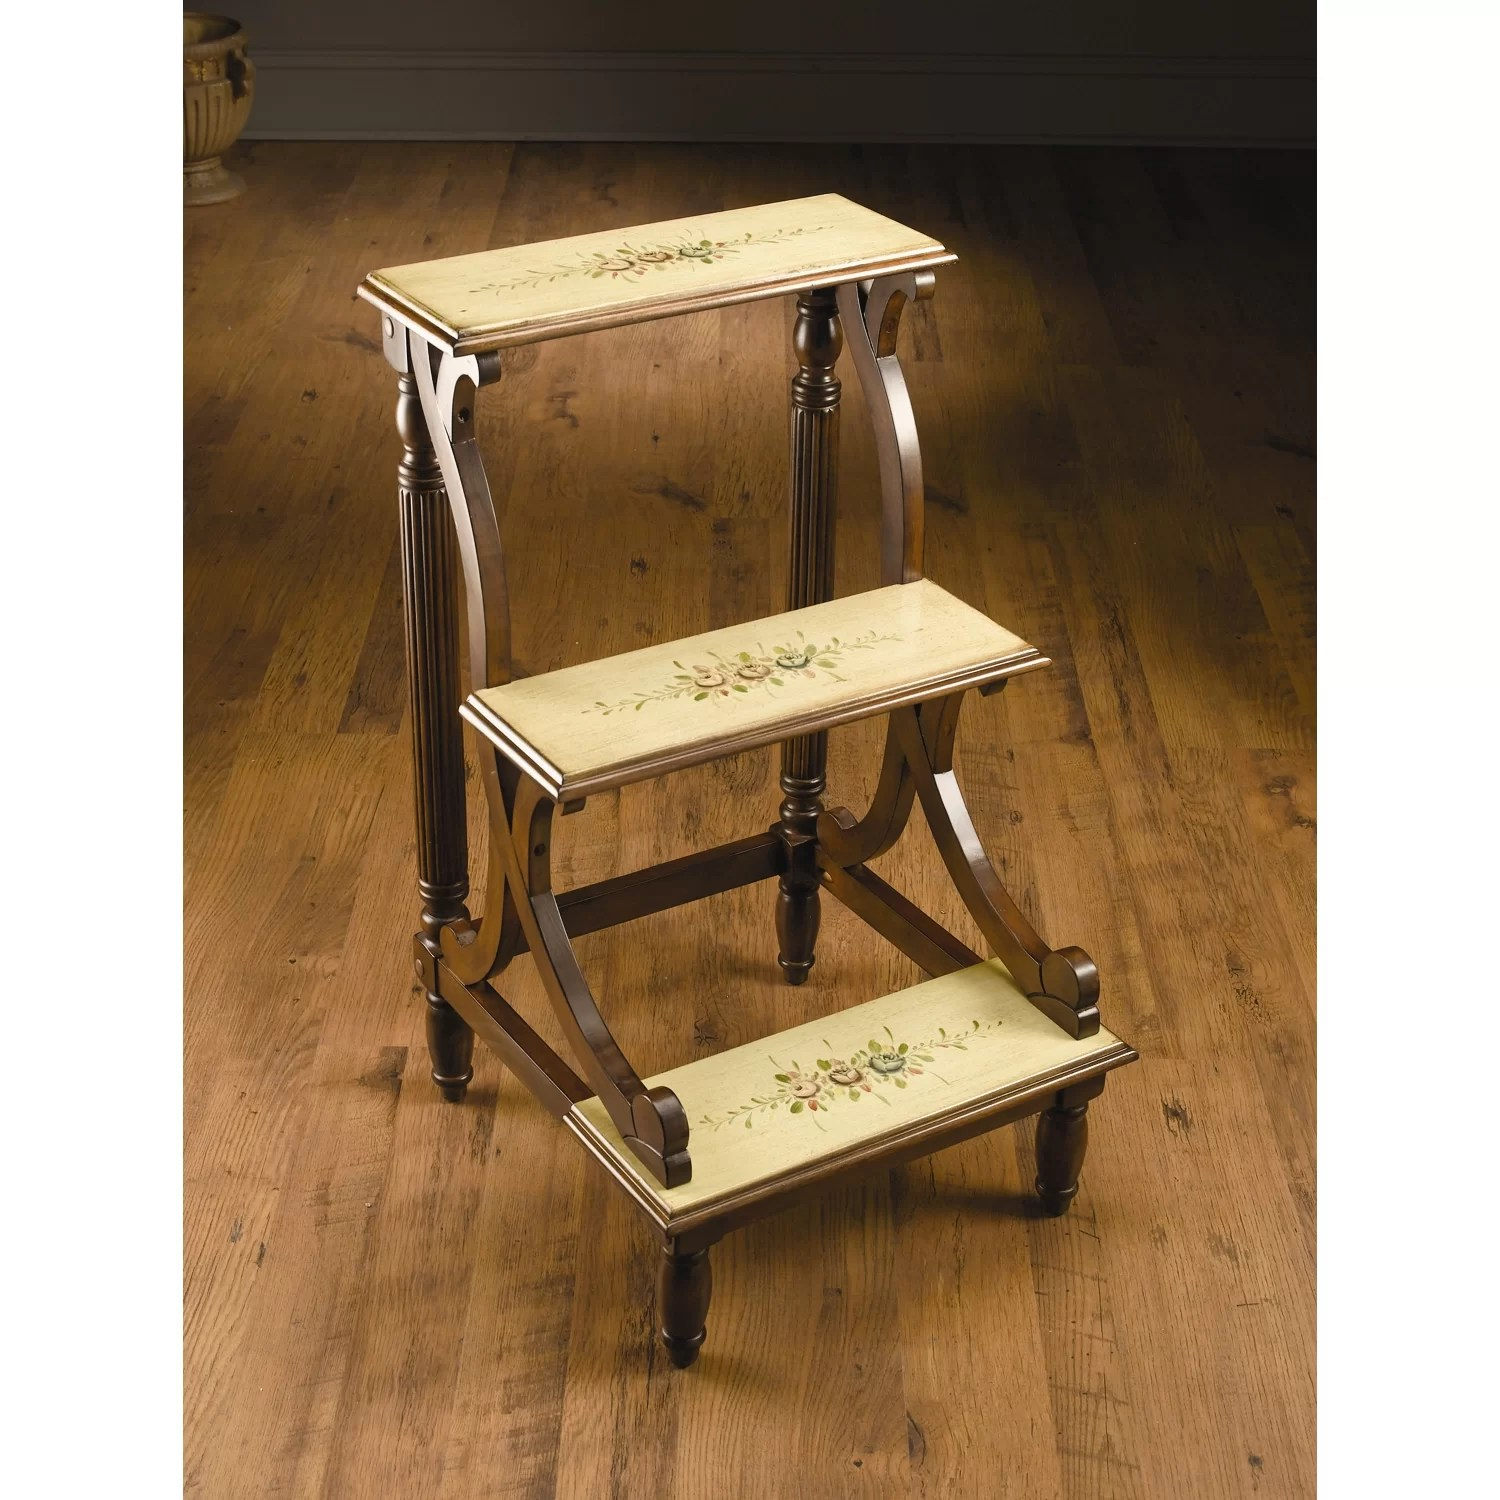 chair step stool ironing board designer covers to go instagram 3 wood library wayfair